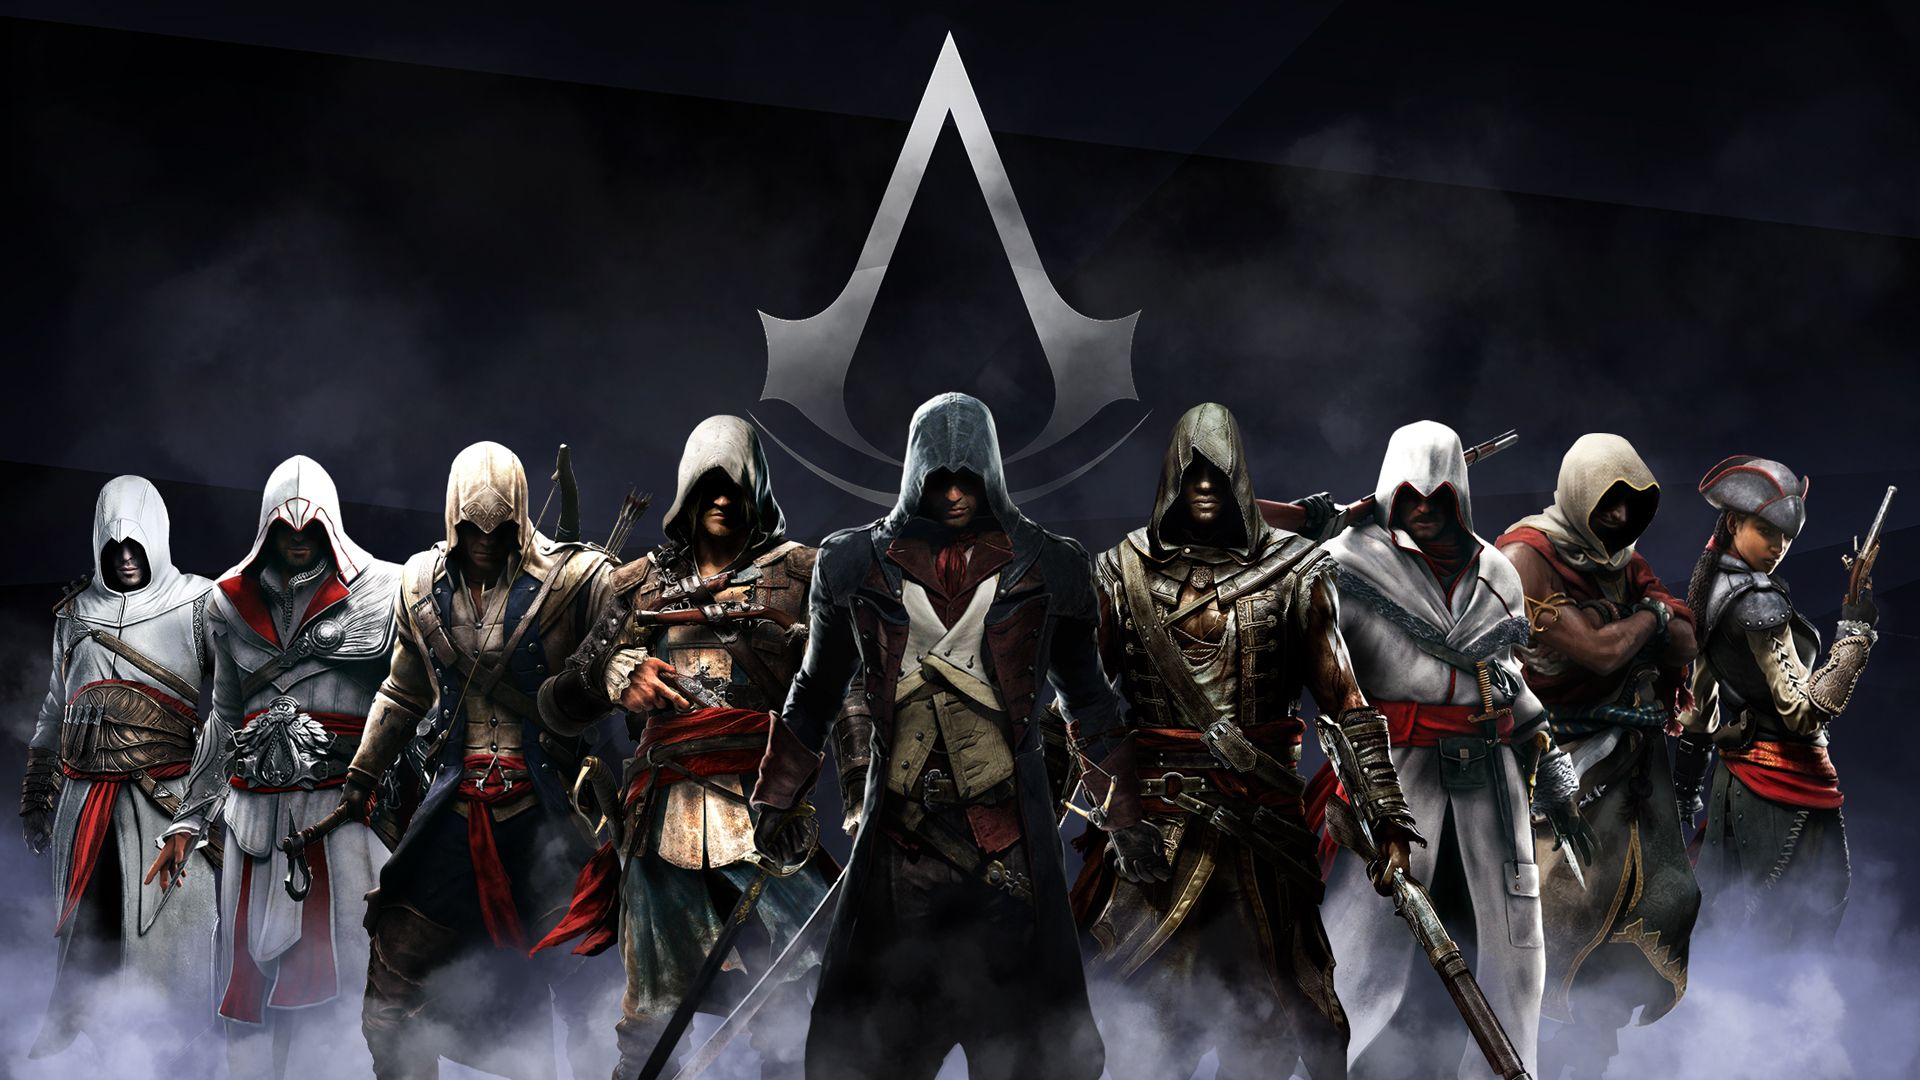 Assassins Creed Wallpapers Posted By Sarah Cunningham